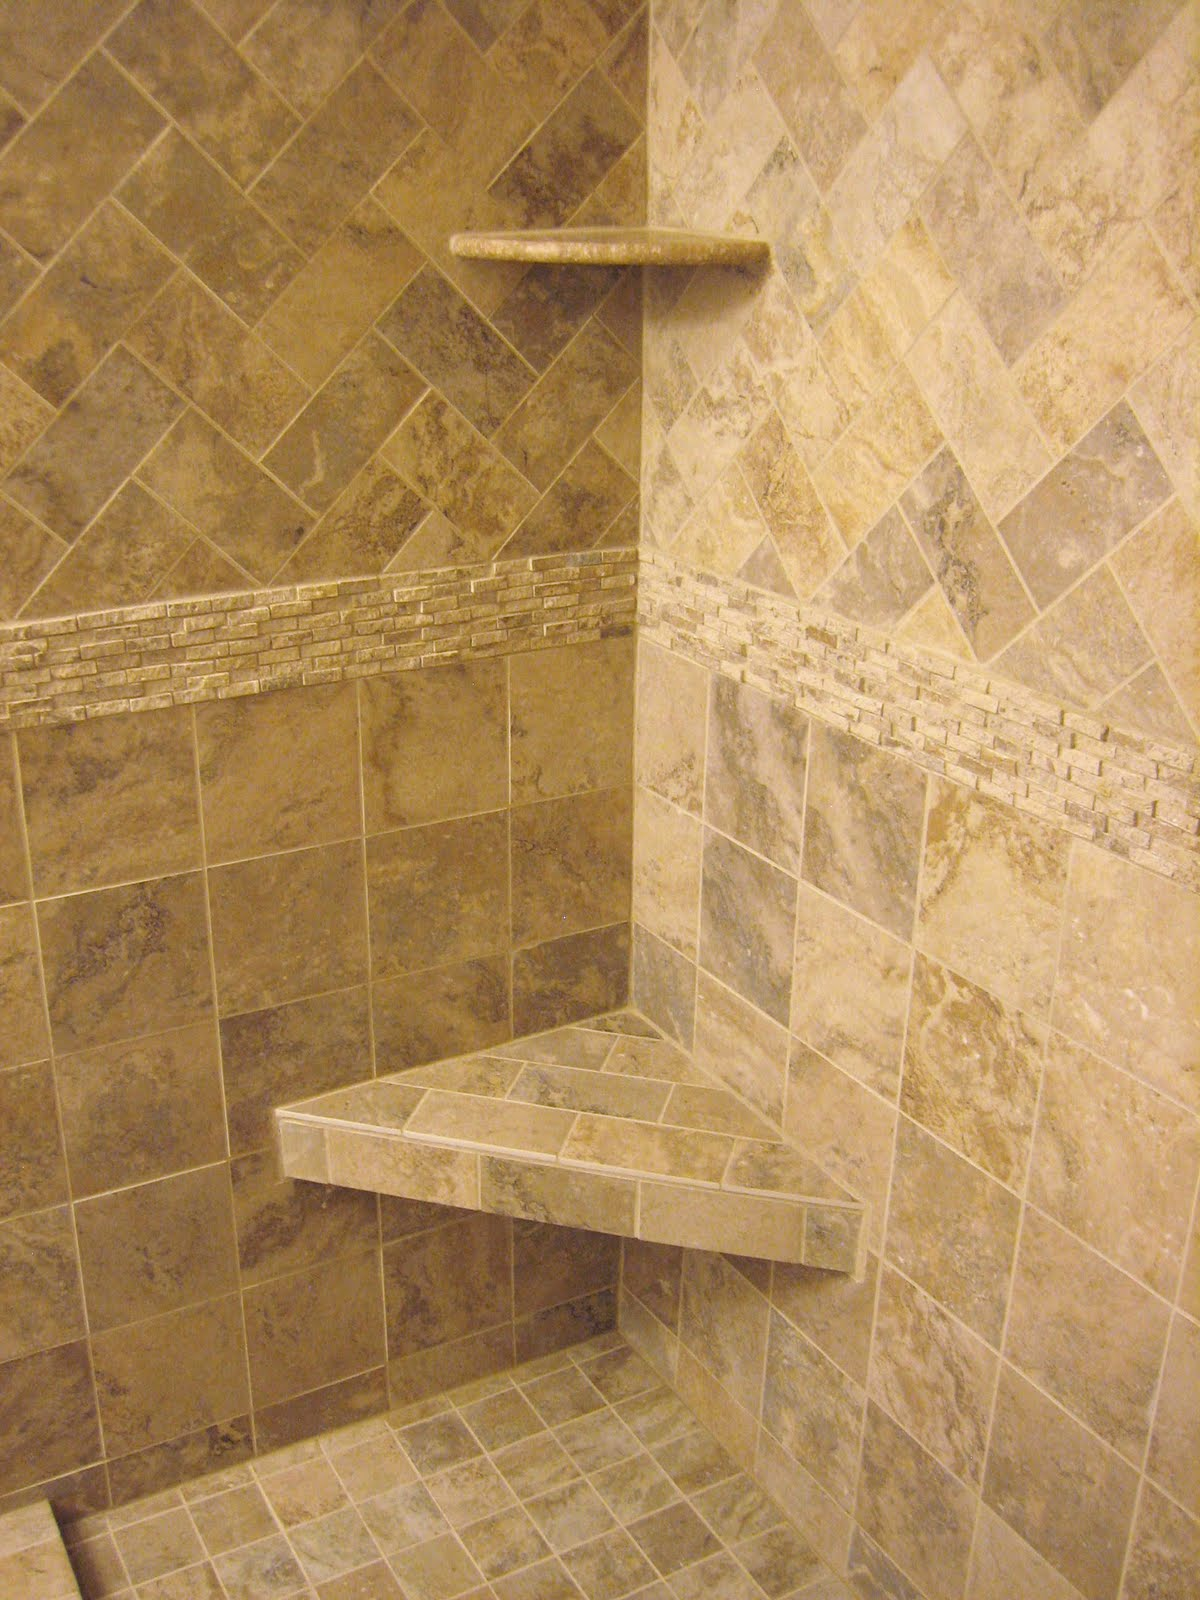 H winter showroom blog luxury master bath remodel athena stone Best tile for shower walls